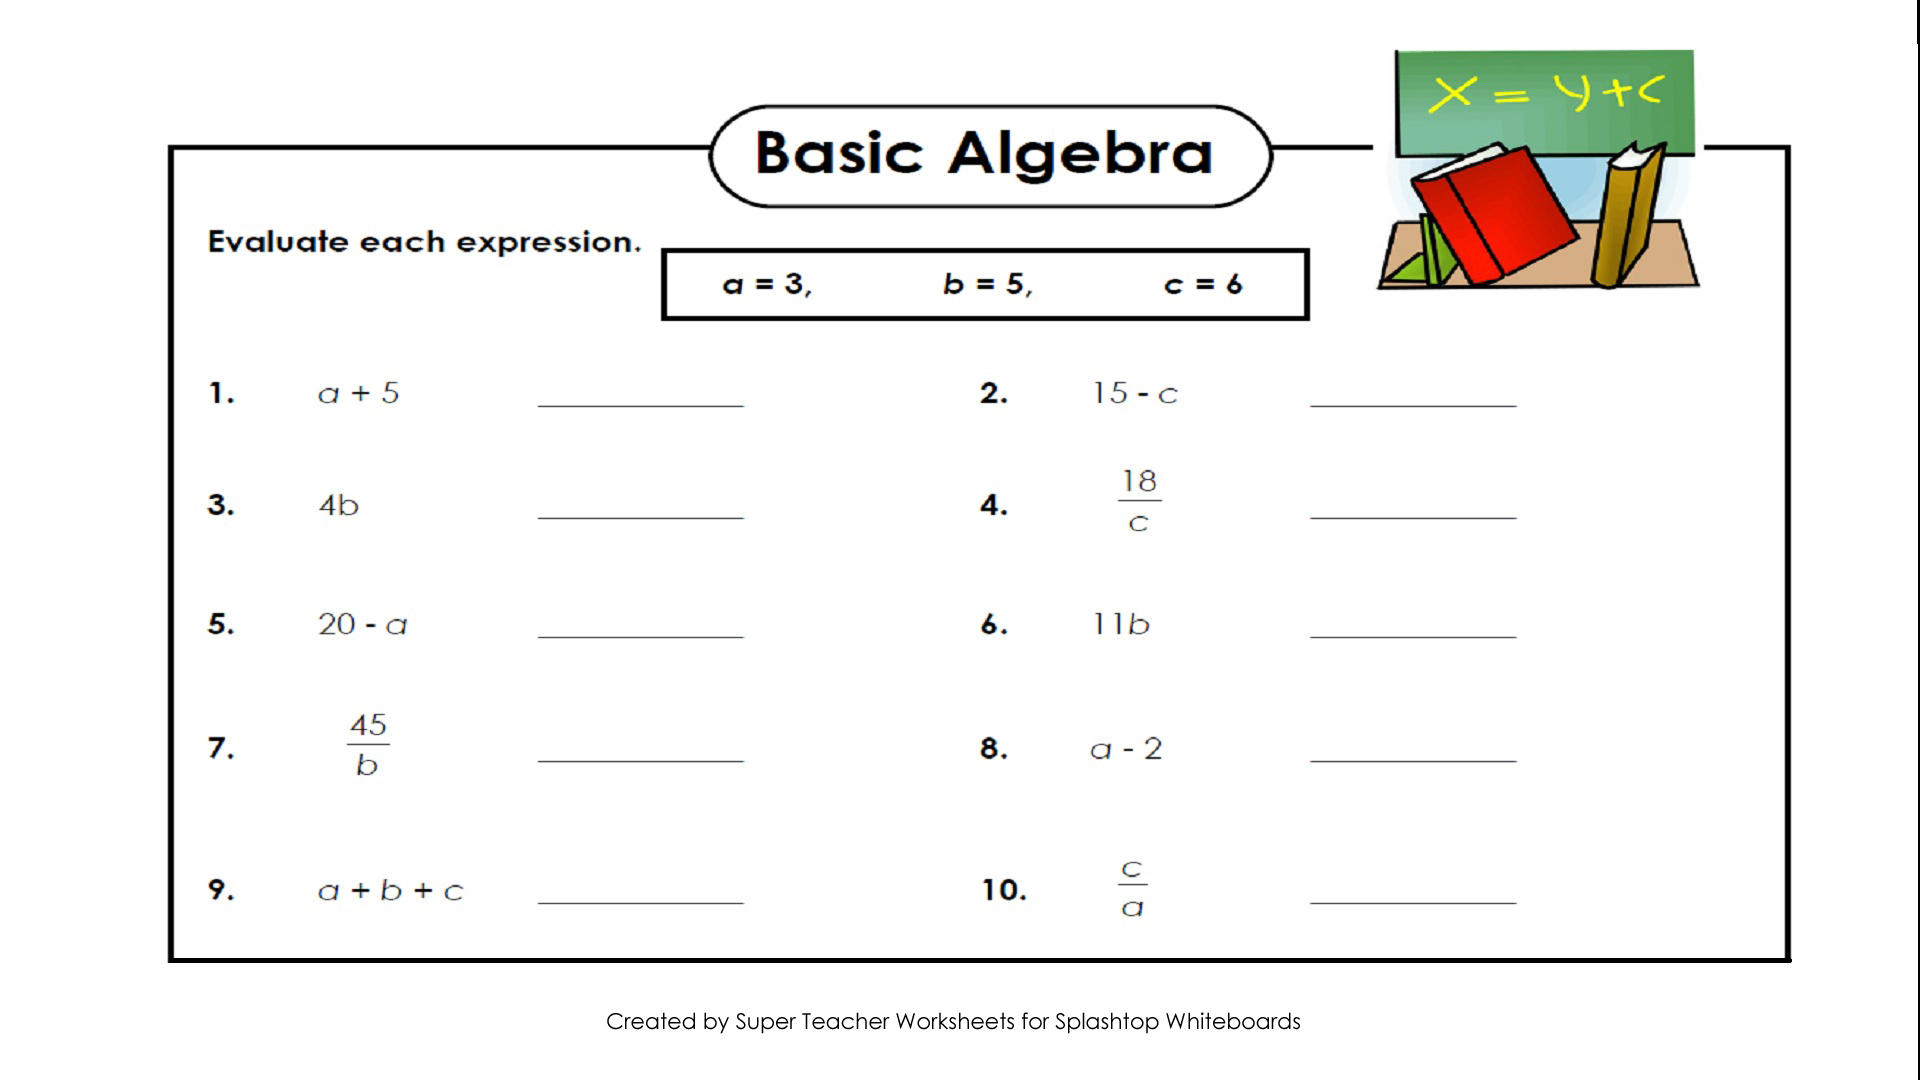 Worksheets Teacher Worksheets For 3rd Grade splashtop whiteboard background graphics algebra basic